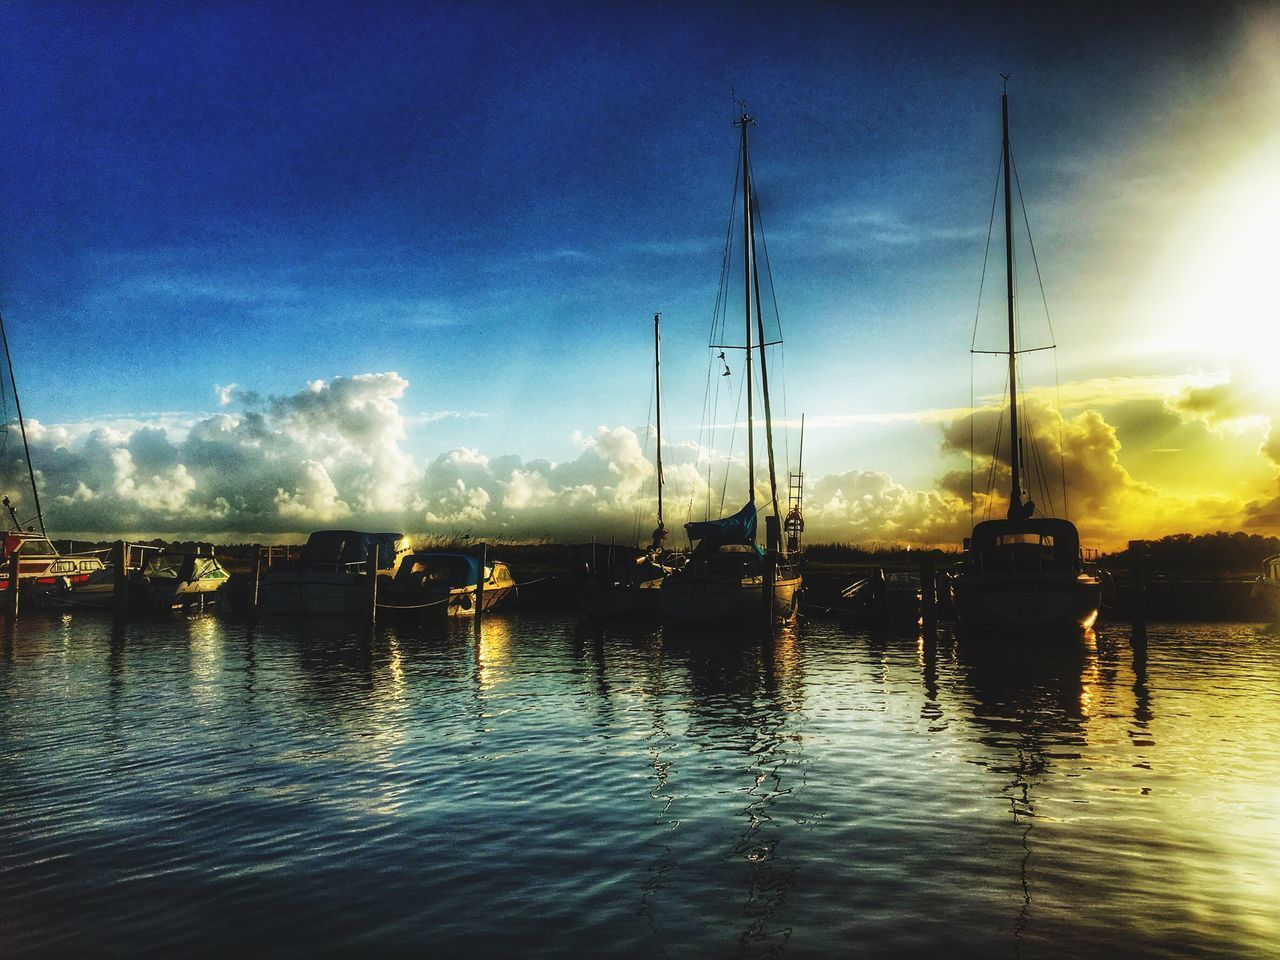 water, sky, no people, tranquility, lake, outdoors, waterfront, reflection, nautical vessel, cloud - sky, tranquil scene, nature, moored, harbor, beauty in nature, sunset, scenics, mast, sailboat, day